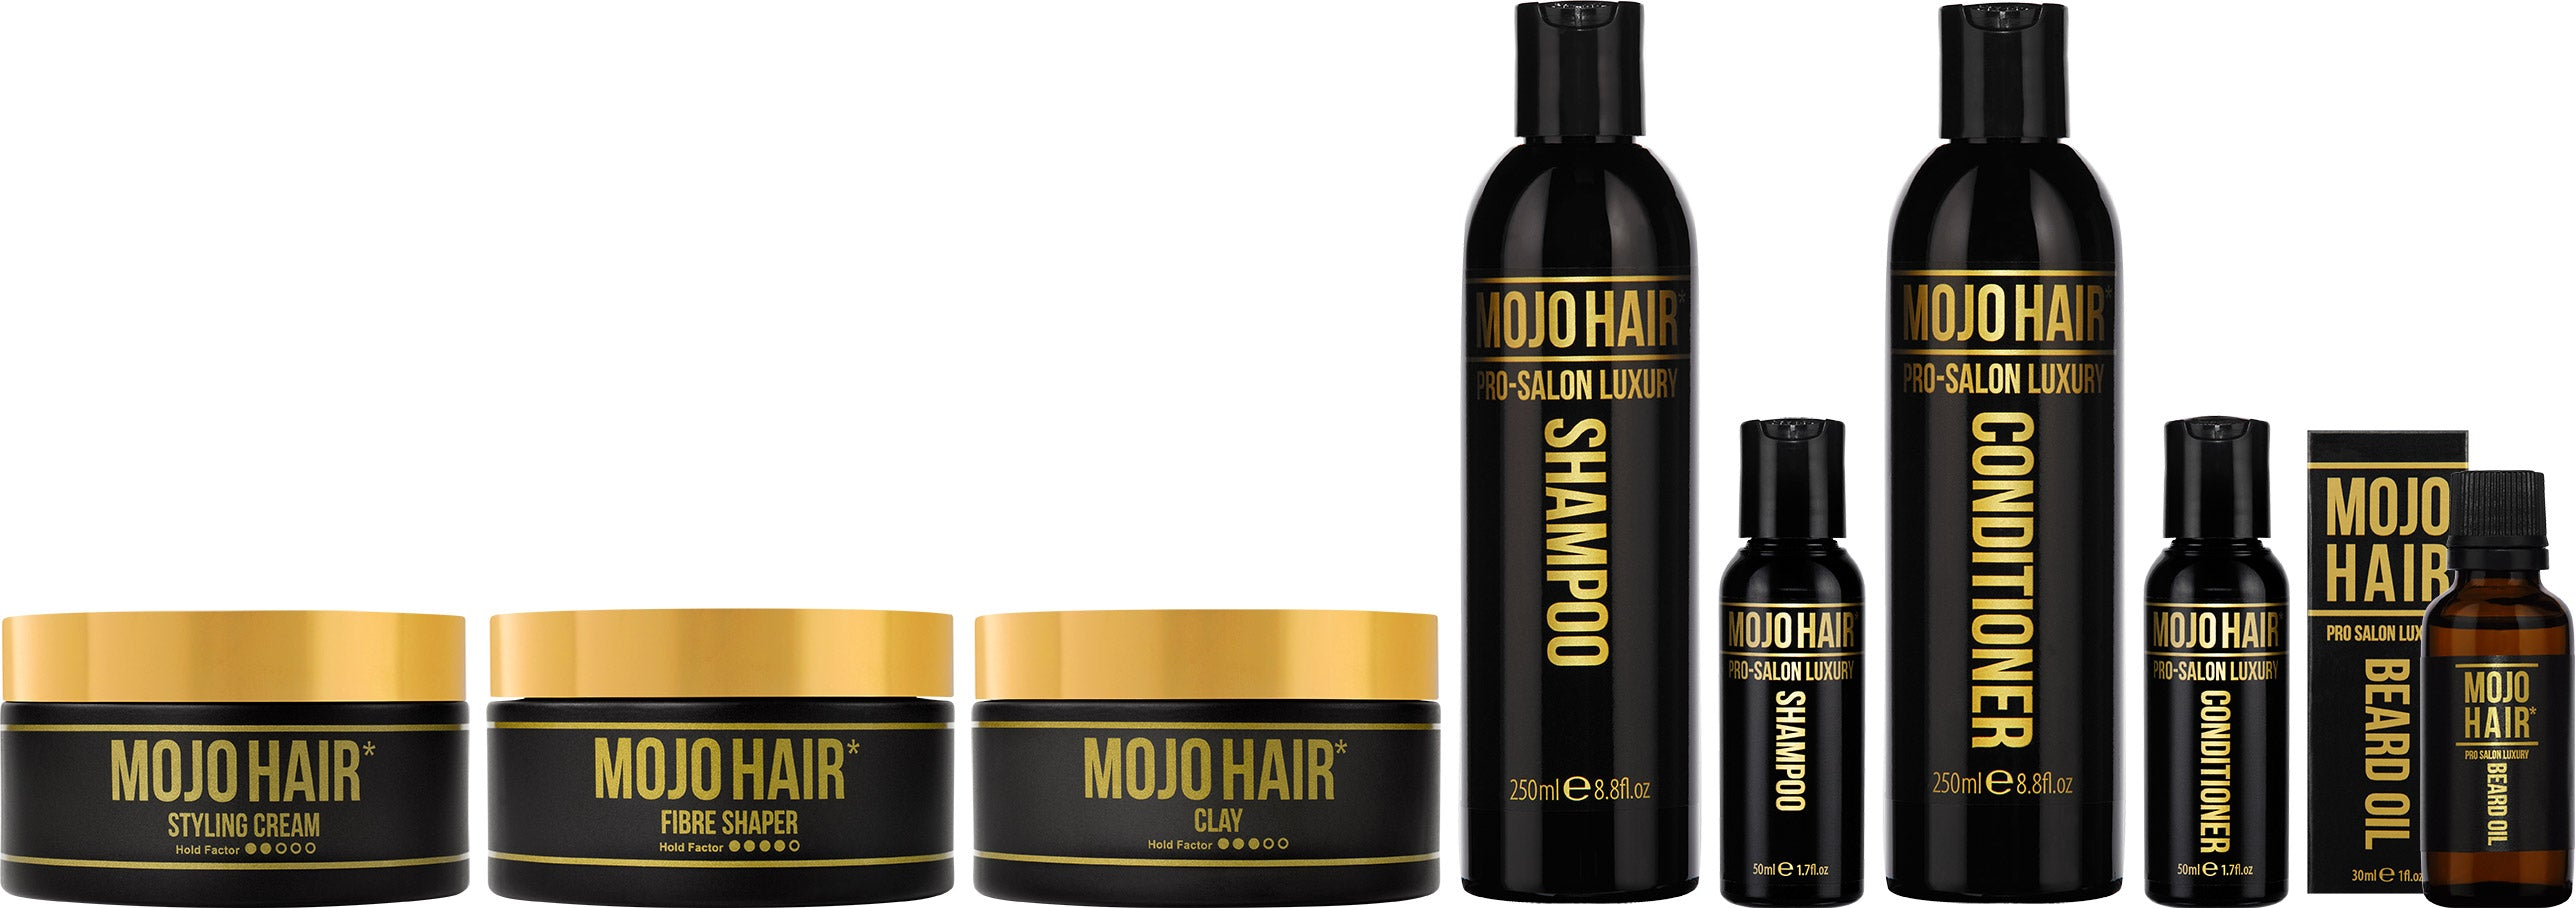 Lush Founder Invests in MOJO Hair